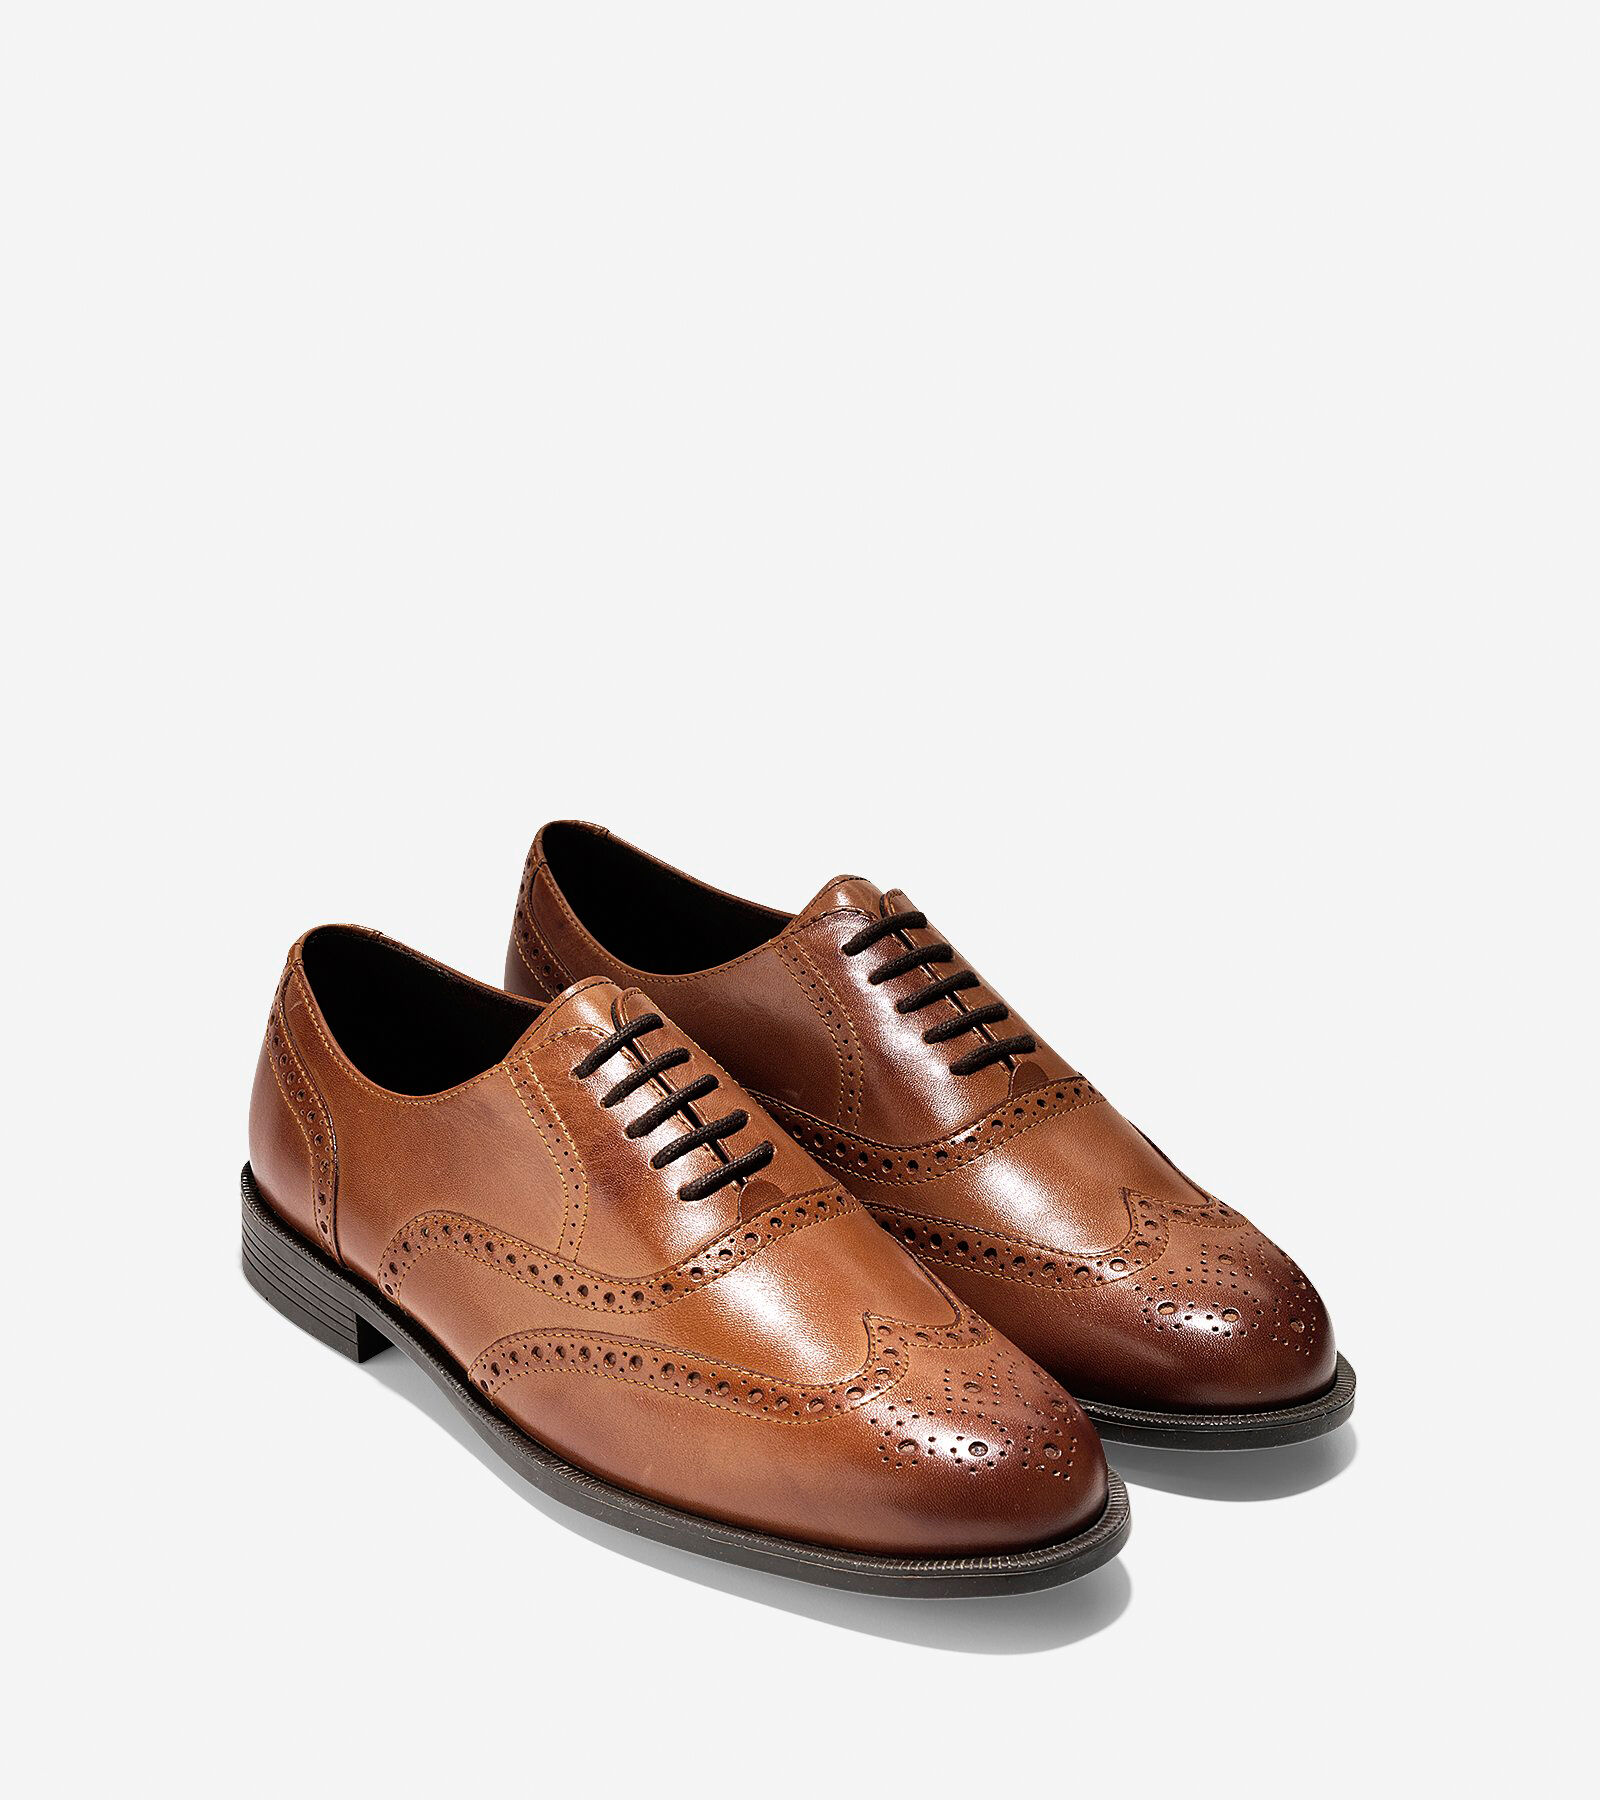 To acquire Haan Cole dress shoes pictures pictures trends